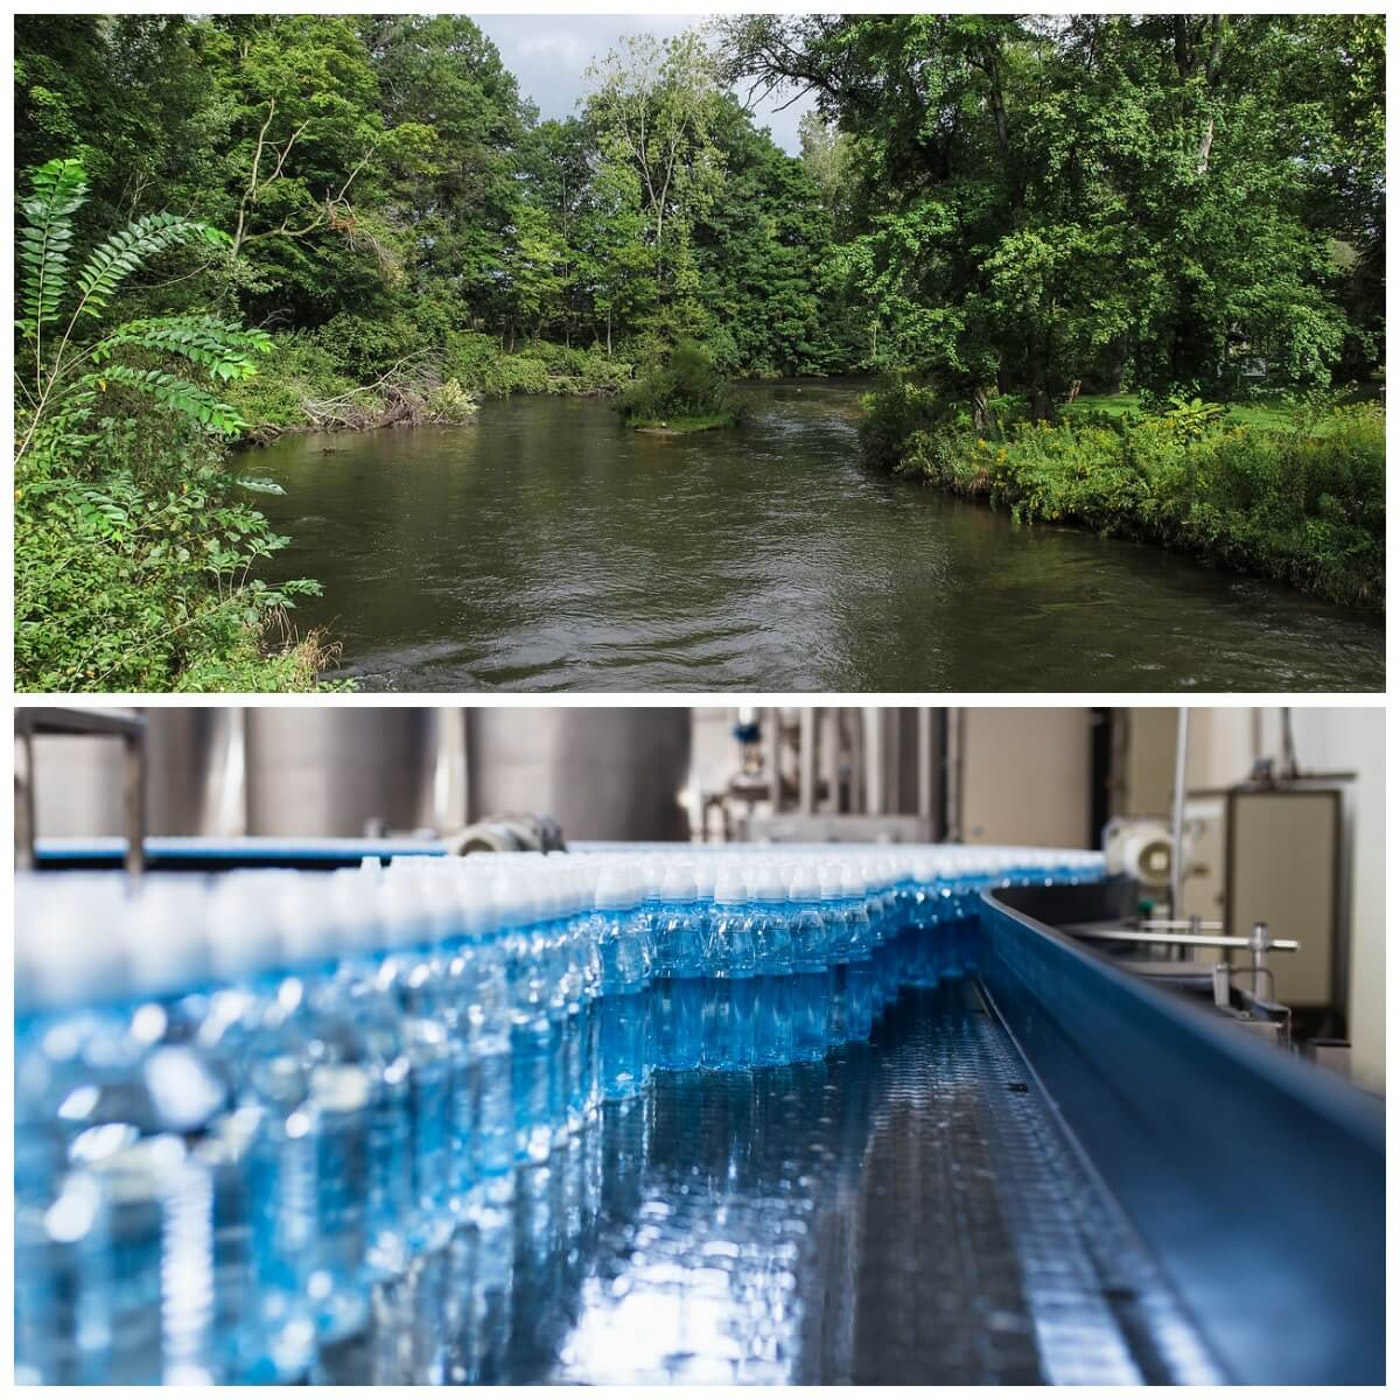 A rural Michigan river and a bottling plant. These rivers are in danger when companies like Nestle tap the aquifers at their headwaters.  Photos courtesy Tim Kiser under Wikimedia Commons - Own work, CC BY-SA 3.0 and via Shutterstock respectively.